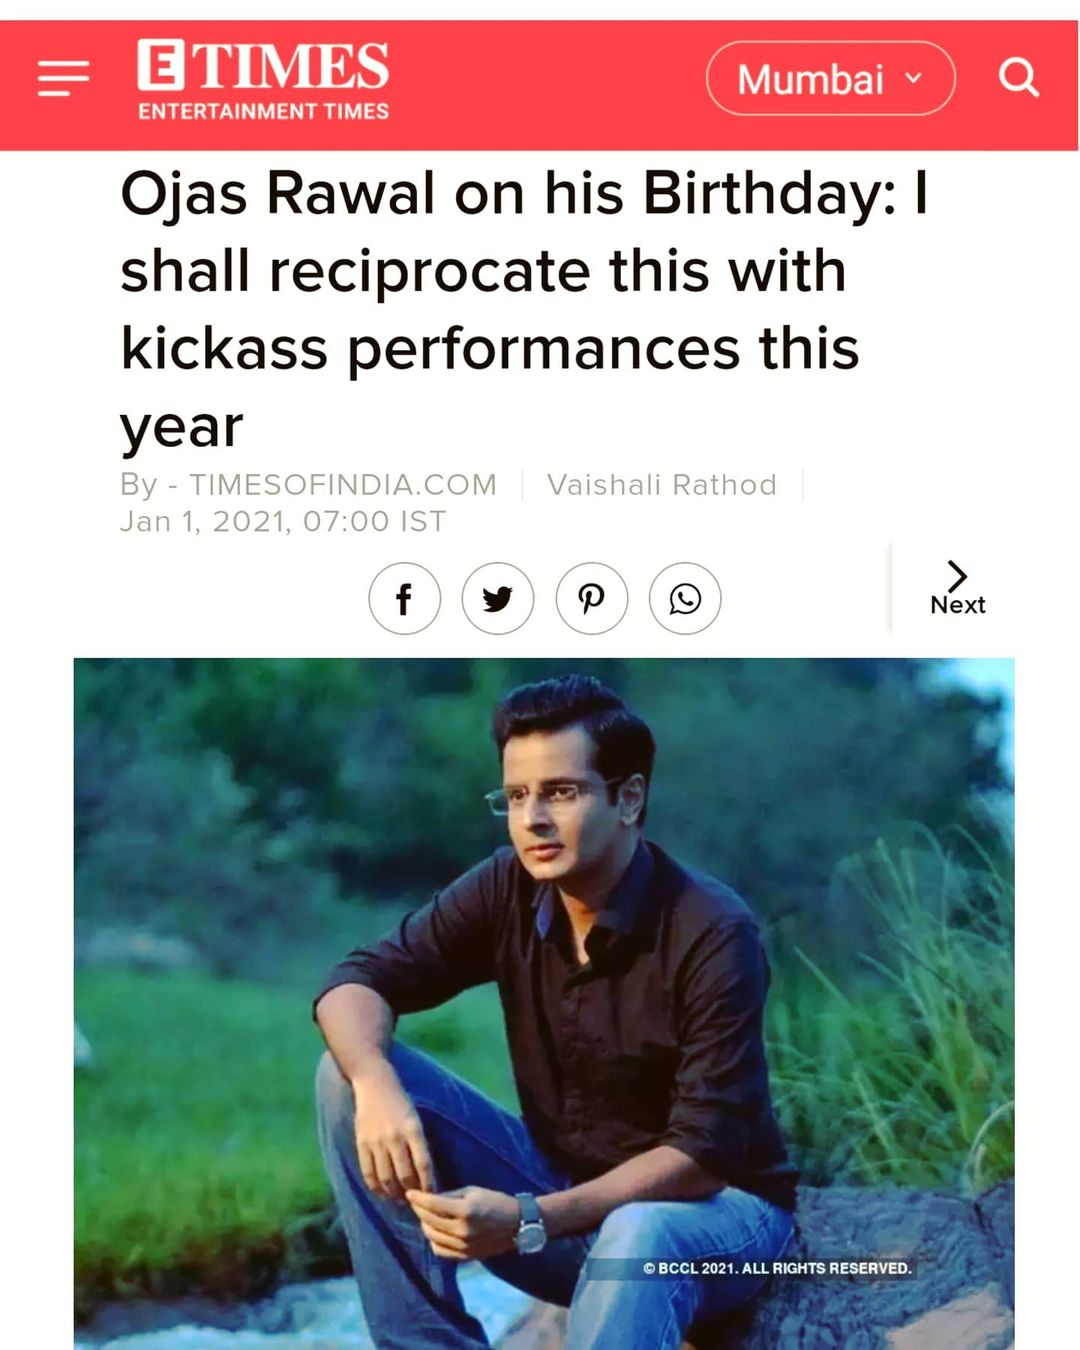 Ojas Rawal,  comedy, usa, tour, gujarati, standupcomedy, improv, OjasRawal, MananDesai, ChirayuMistry, la, losangeles, cali, california, seattle, washington, sanjose, columbus, ohio, stlouis, missouri, chicago, illinois, boston, massachusetts, newhaven, connecticut, columbia, washingtondc, rockville, maryland